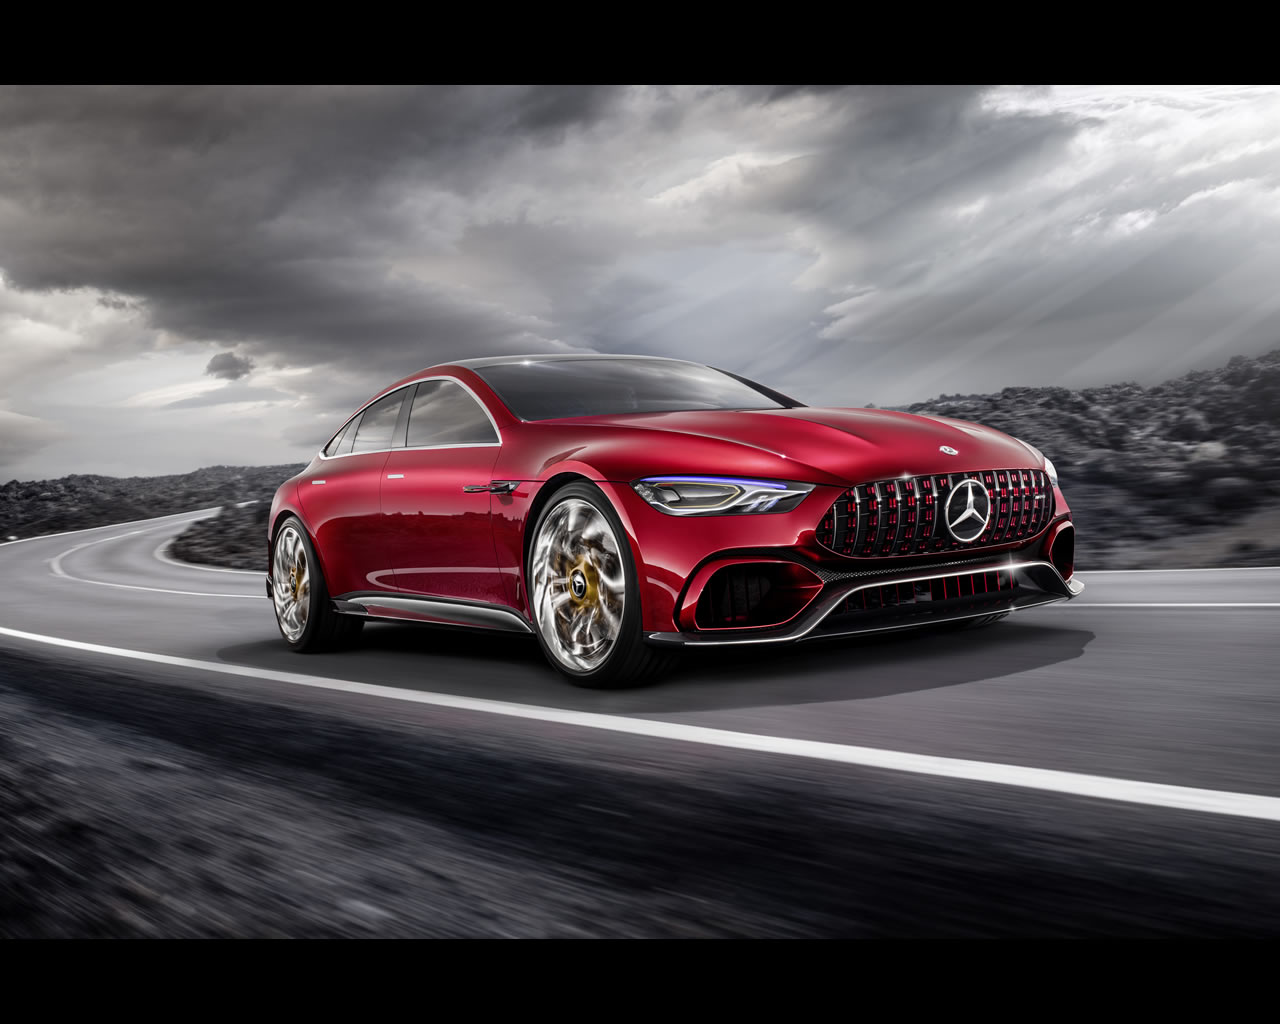 Mercedes benz amg gt hybrid concept 2017 for Hybrid mercedes benz